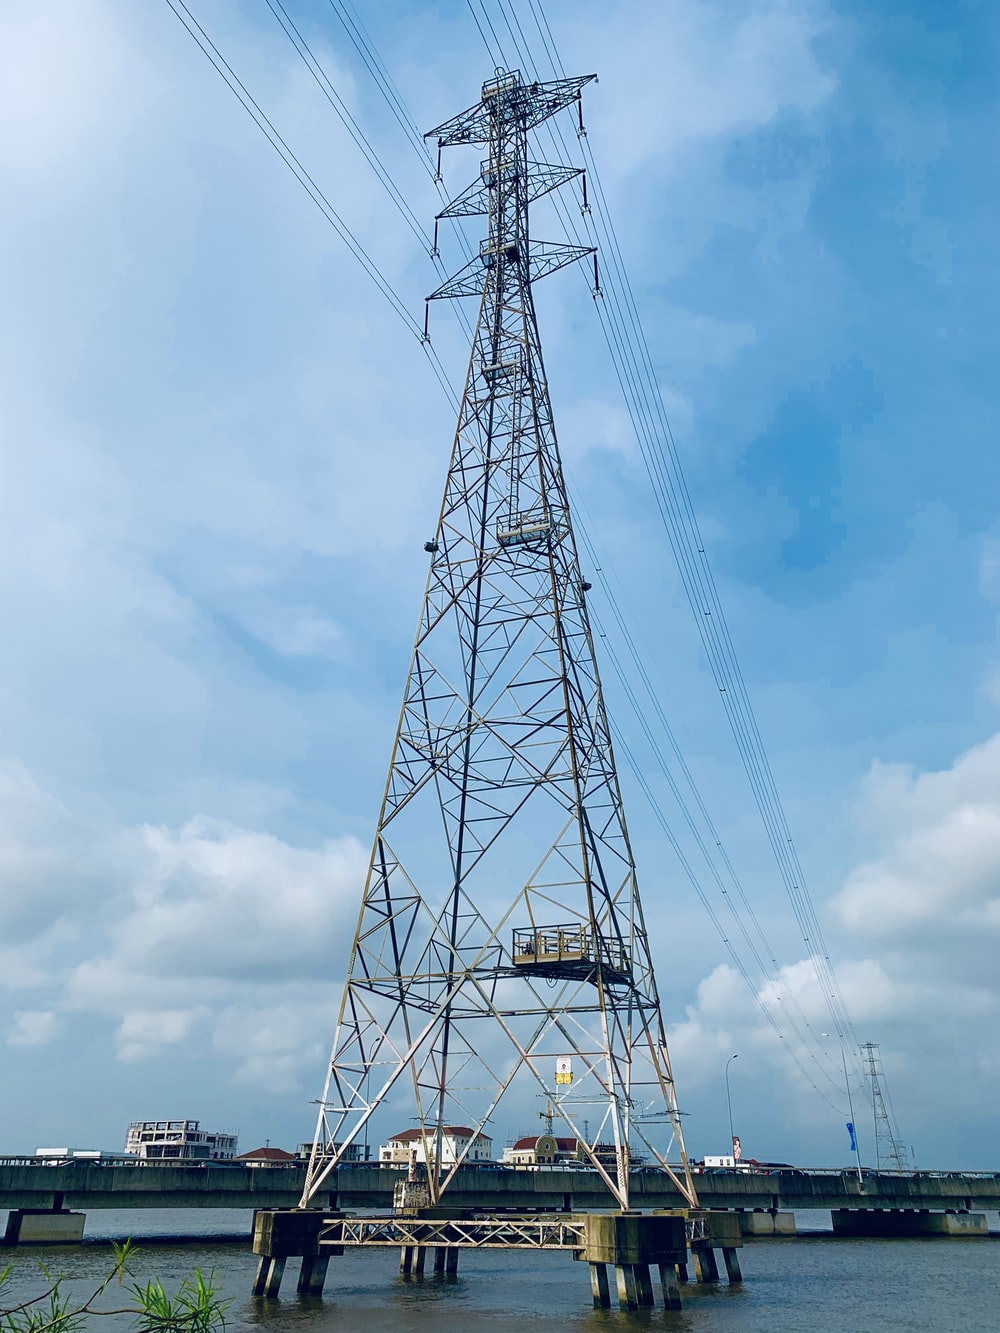 gray metal transmission tower in body of water